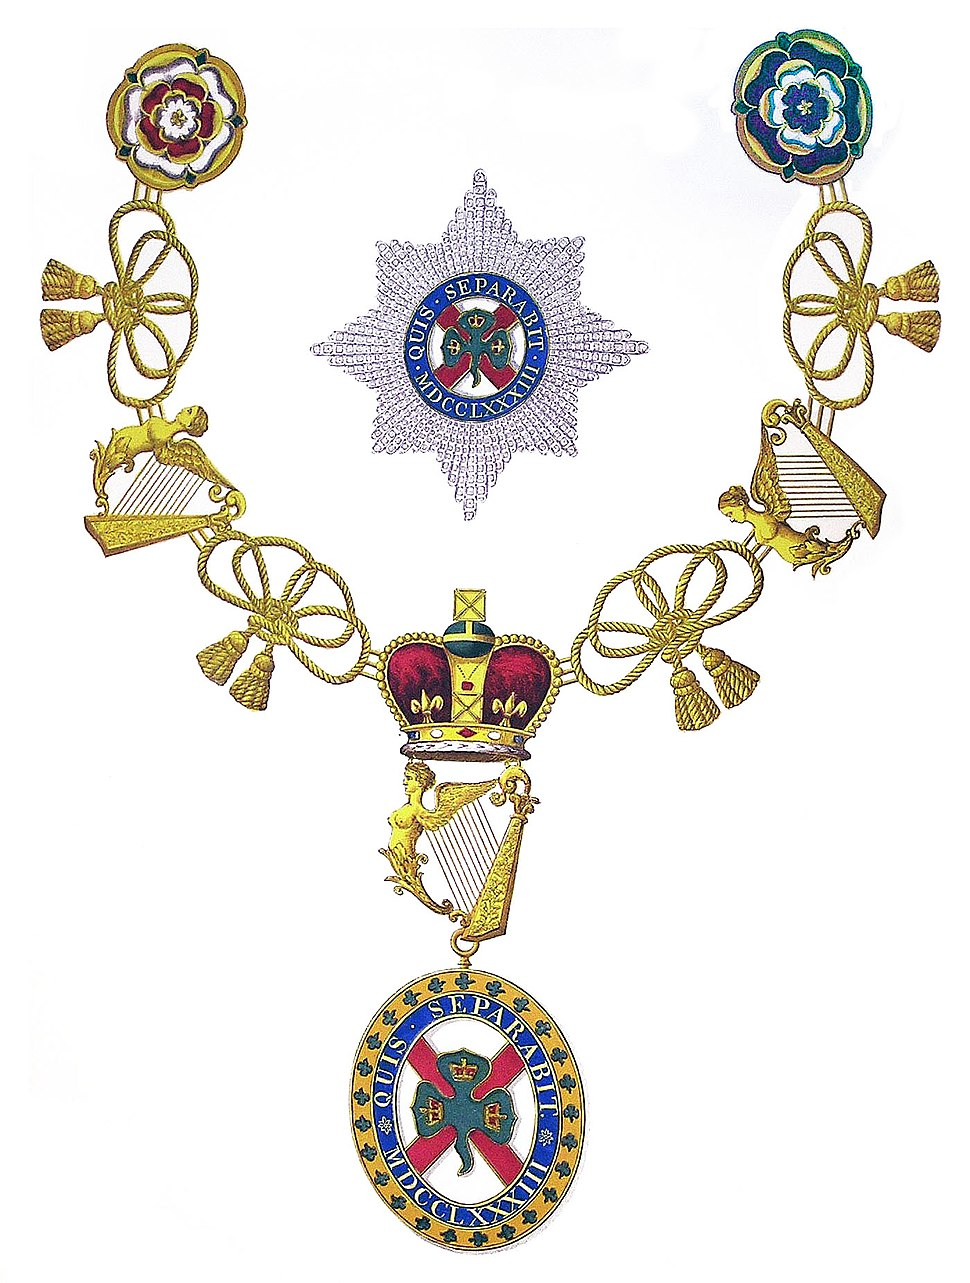 Insignia of Knight of St Patrick